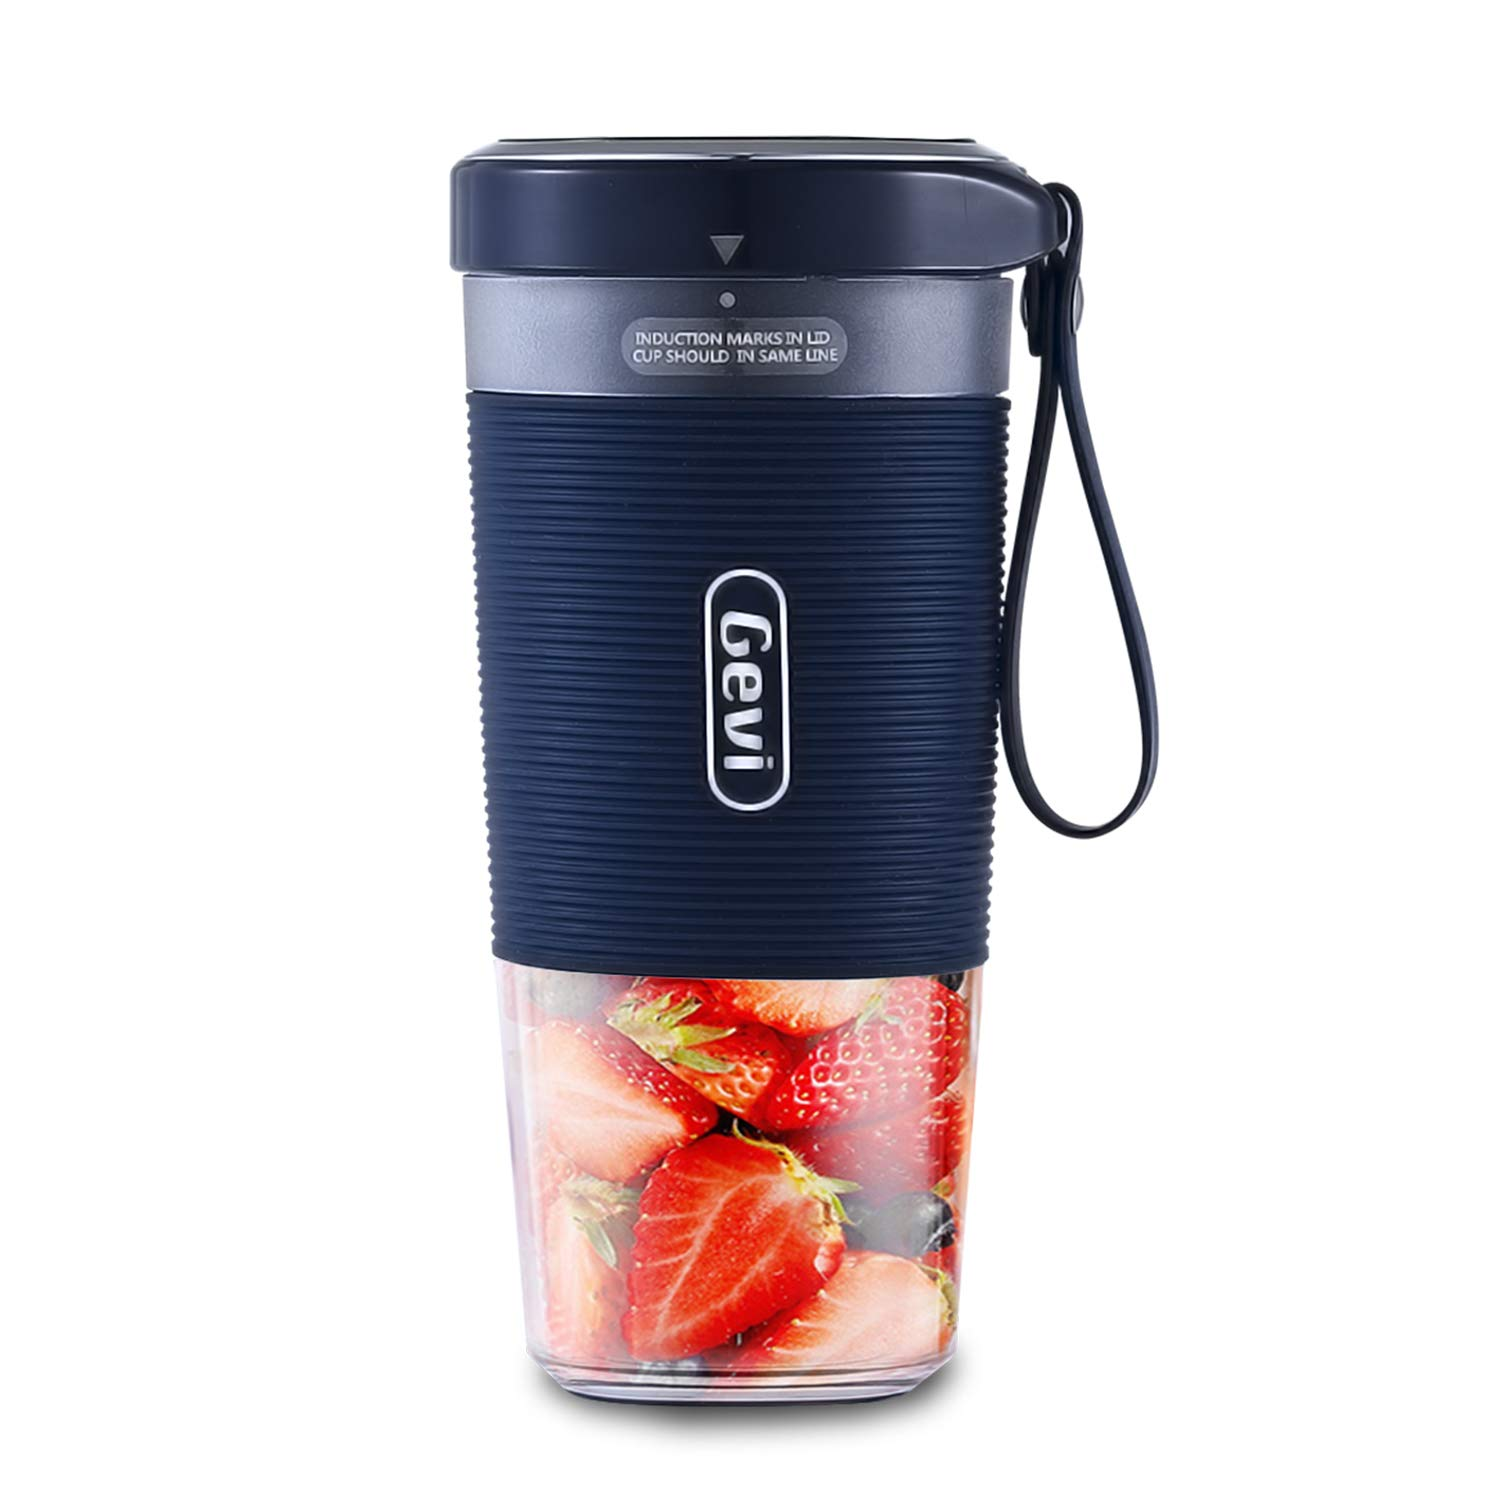 Portable Blender, Cordless Personal Blender Juicer,Small Smoothie Blender USB Fruit Juicer Mixer,300ml, BPA Free,Home/Outdoor/Office by Barsetto